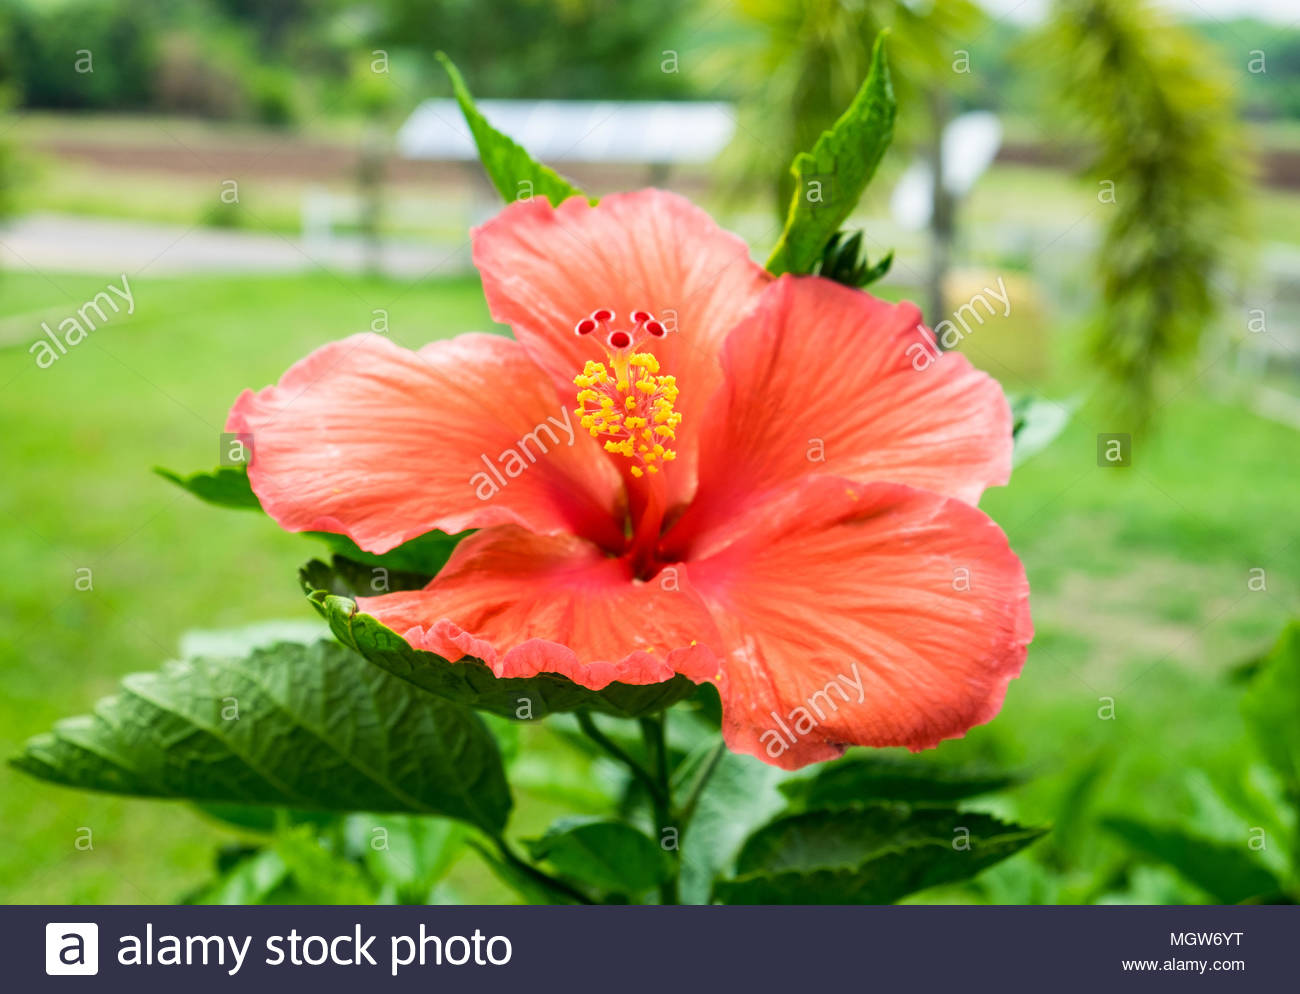 Red Orange Hibiscus China Rose Hawaiian Flower Blossom Colorful